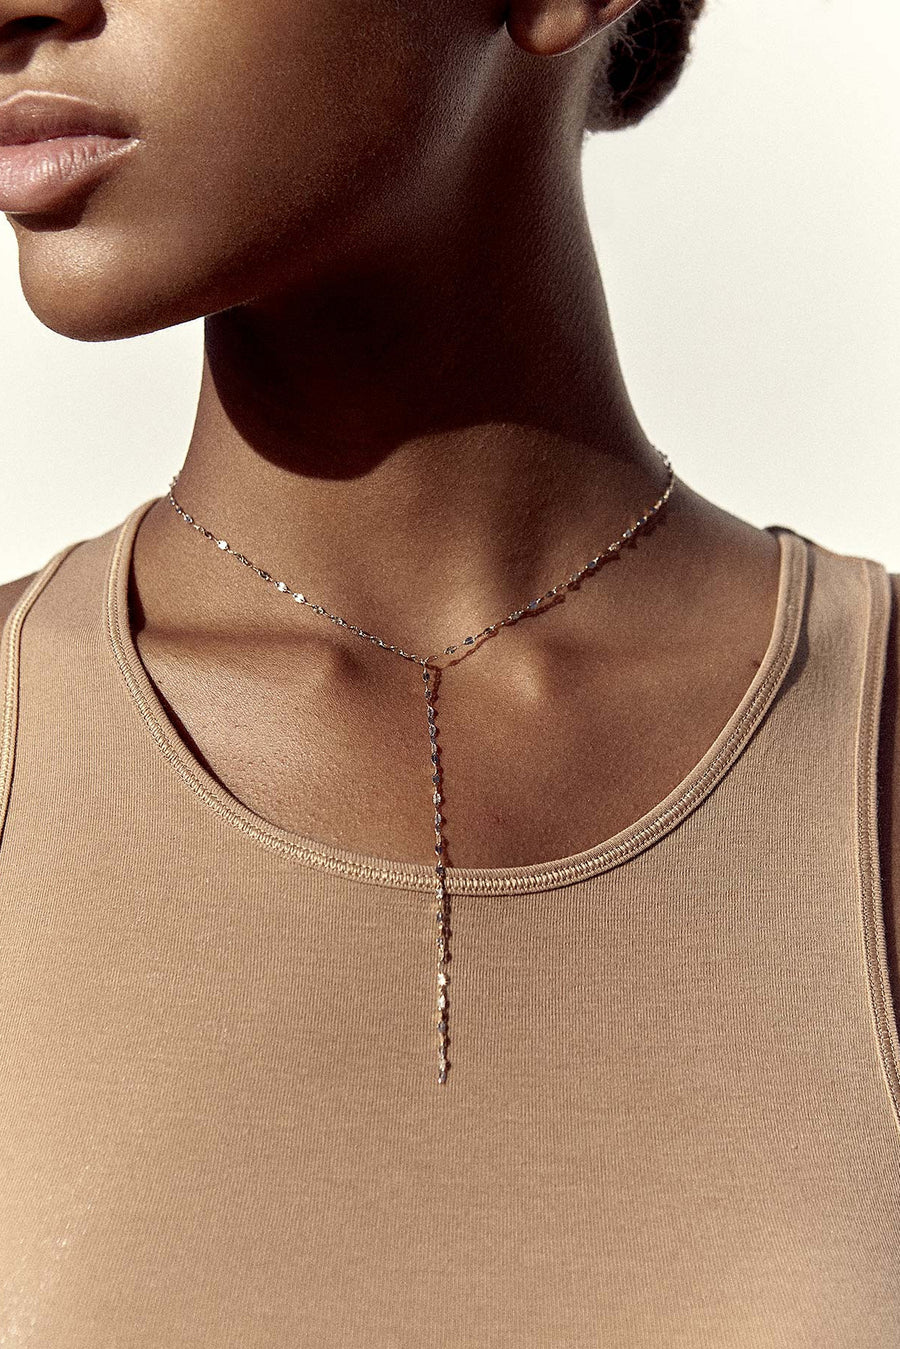 Comporta N°2 Chain Necklace